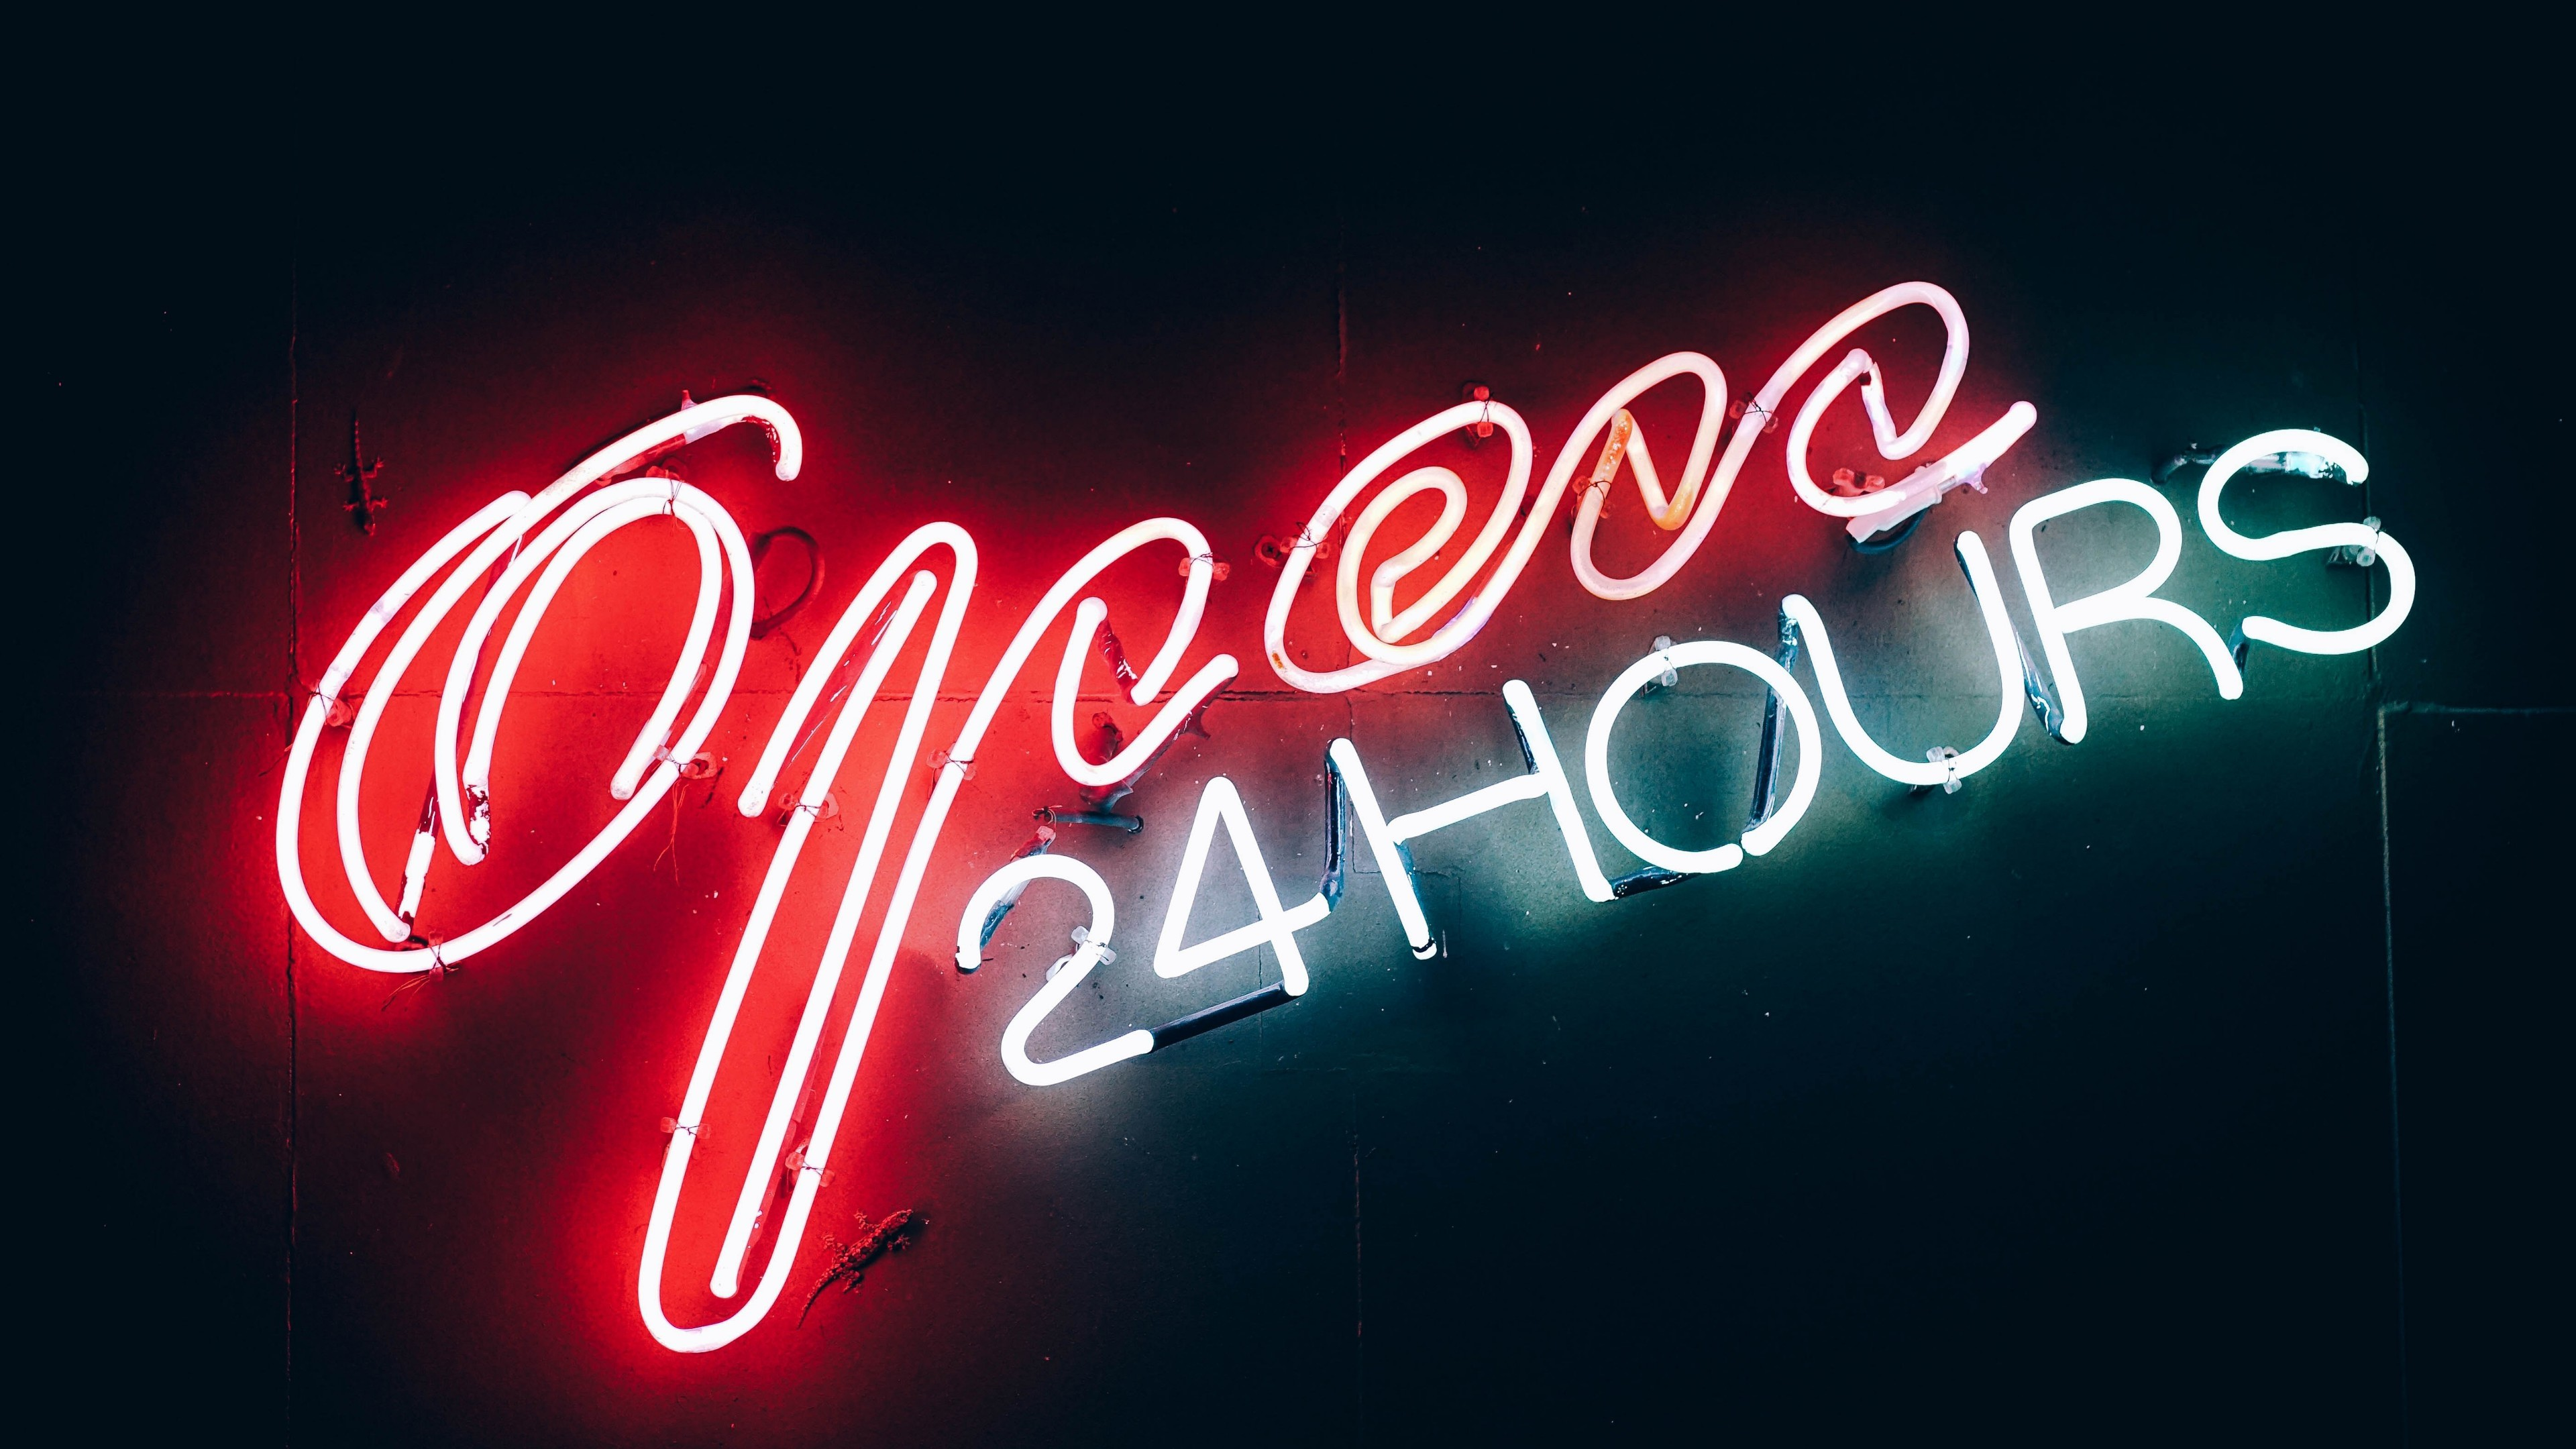 Res: 3840x2160, Open 24 Hours Neon Sign Wallpaper | Wallpaper Studio 10 | Tens of thousands  HD and UltraHD wallpapers for Android, Windows and Xbox